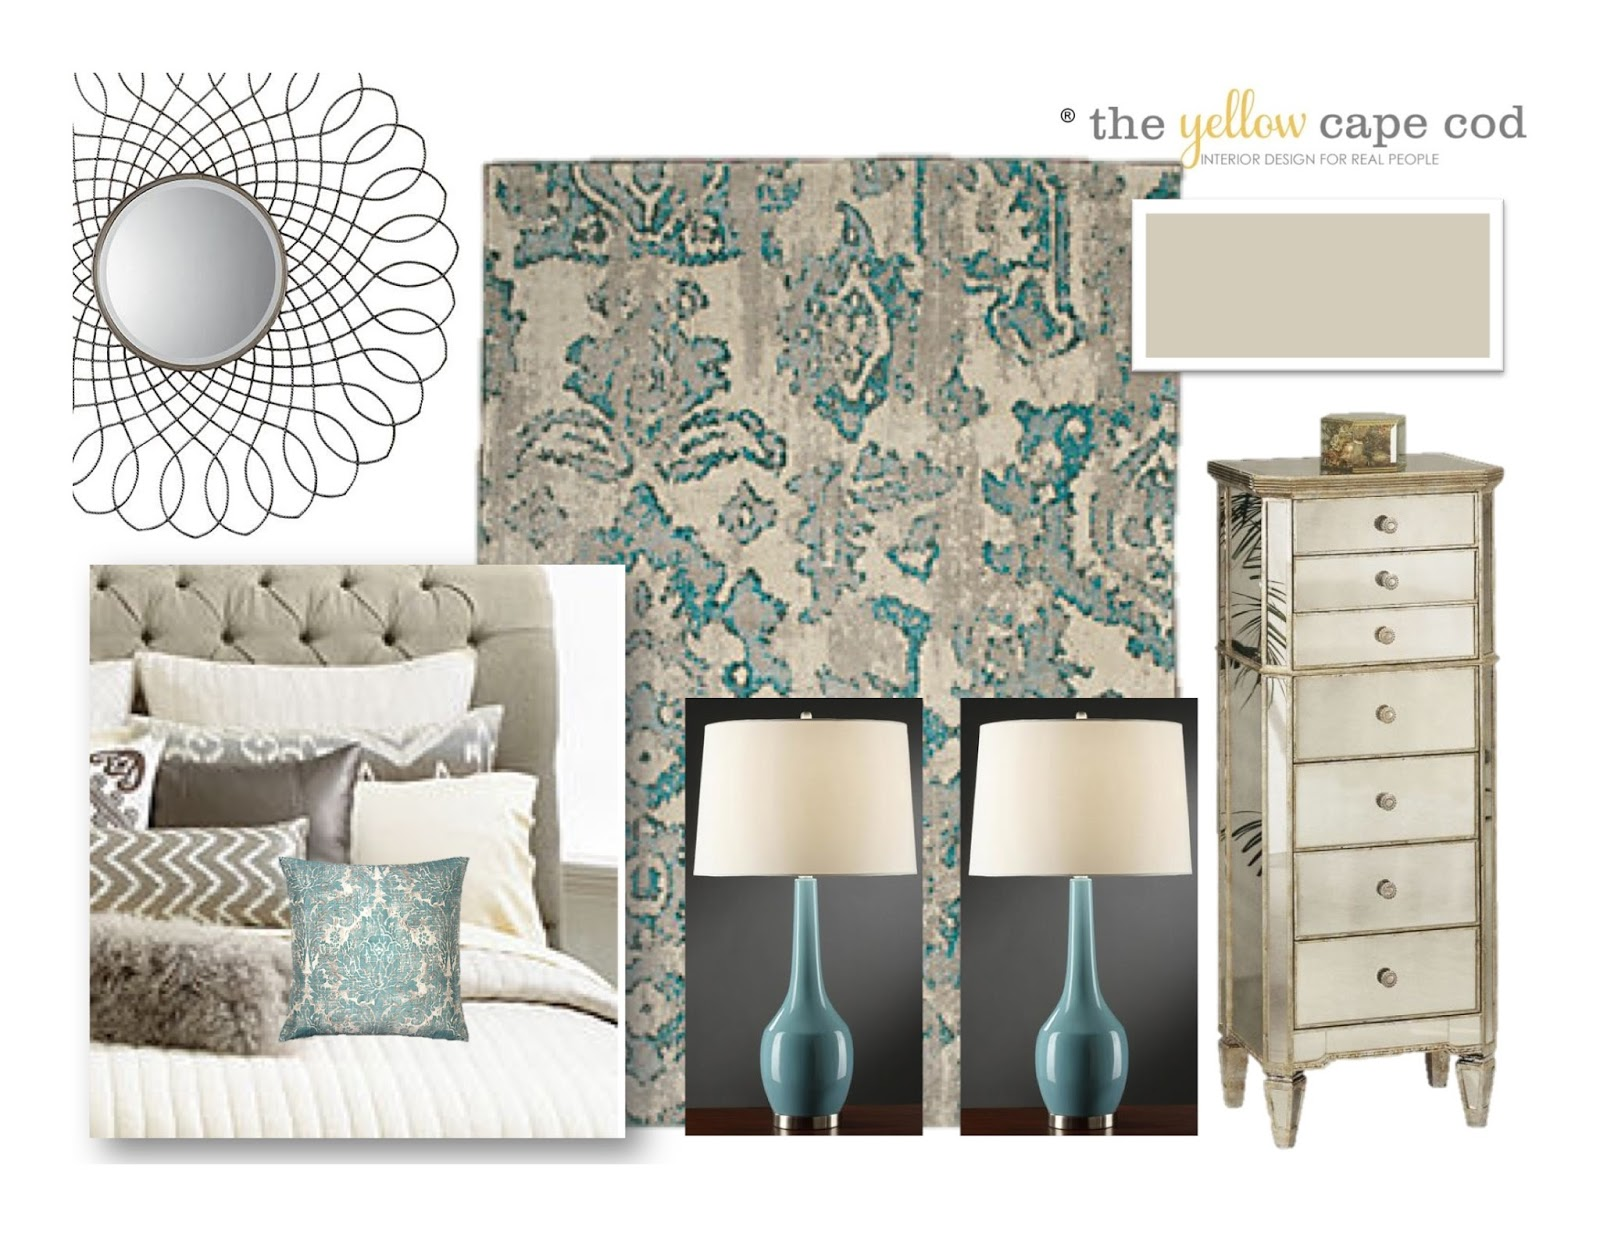 The yellow cape cod luxurious tiffany blue and beige Blue and tan bedroom decorating ideas